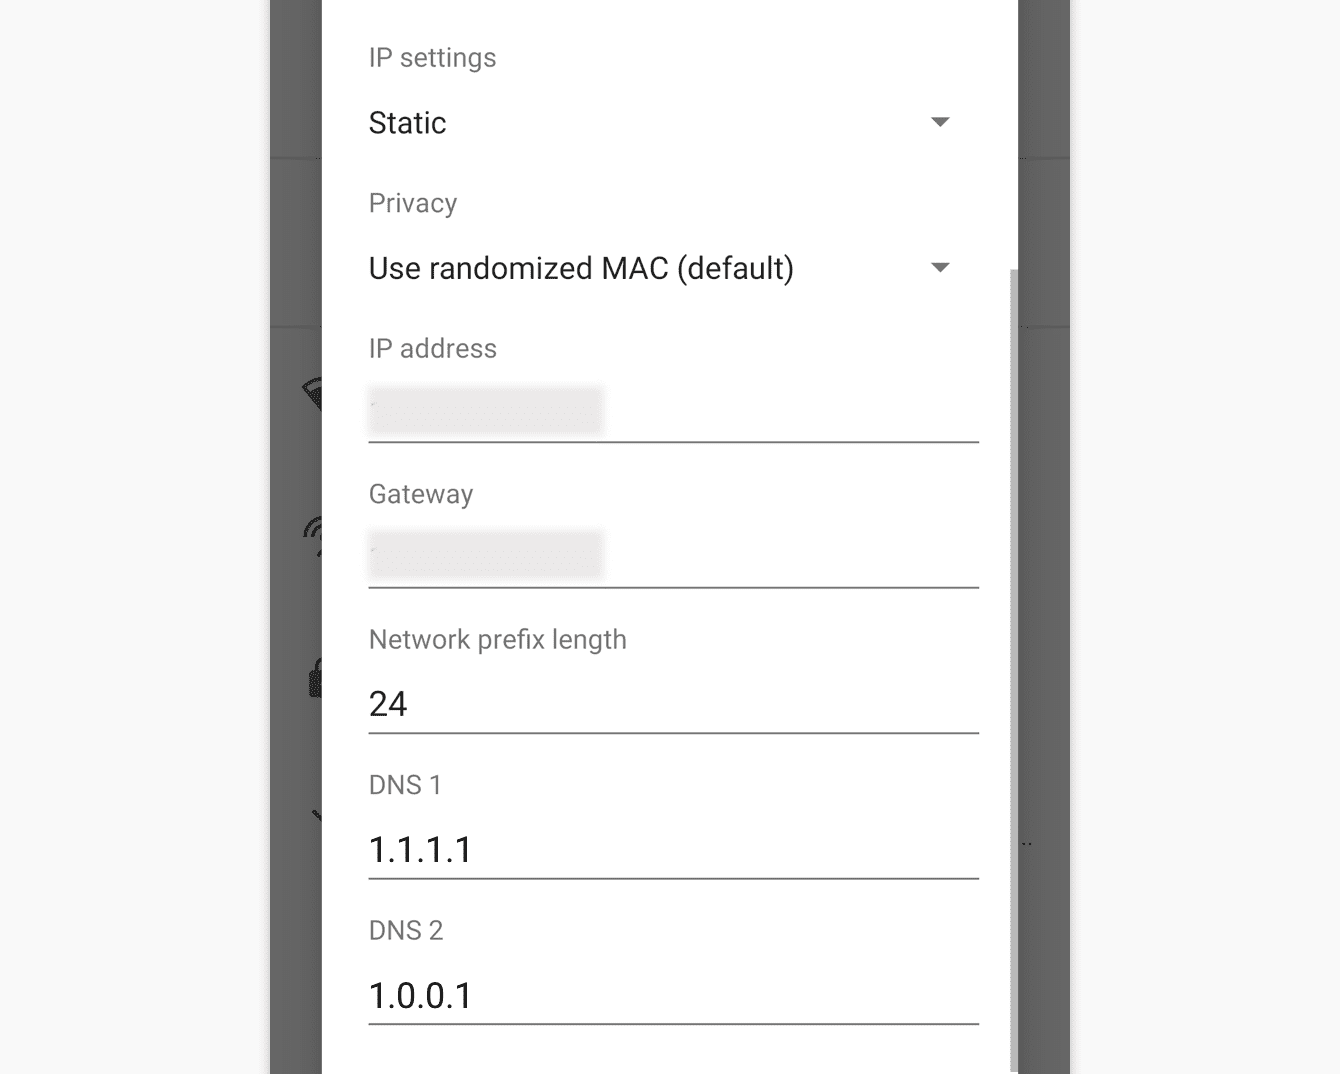 Enter Cloudfare DNS servers on the Android device.